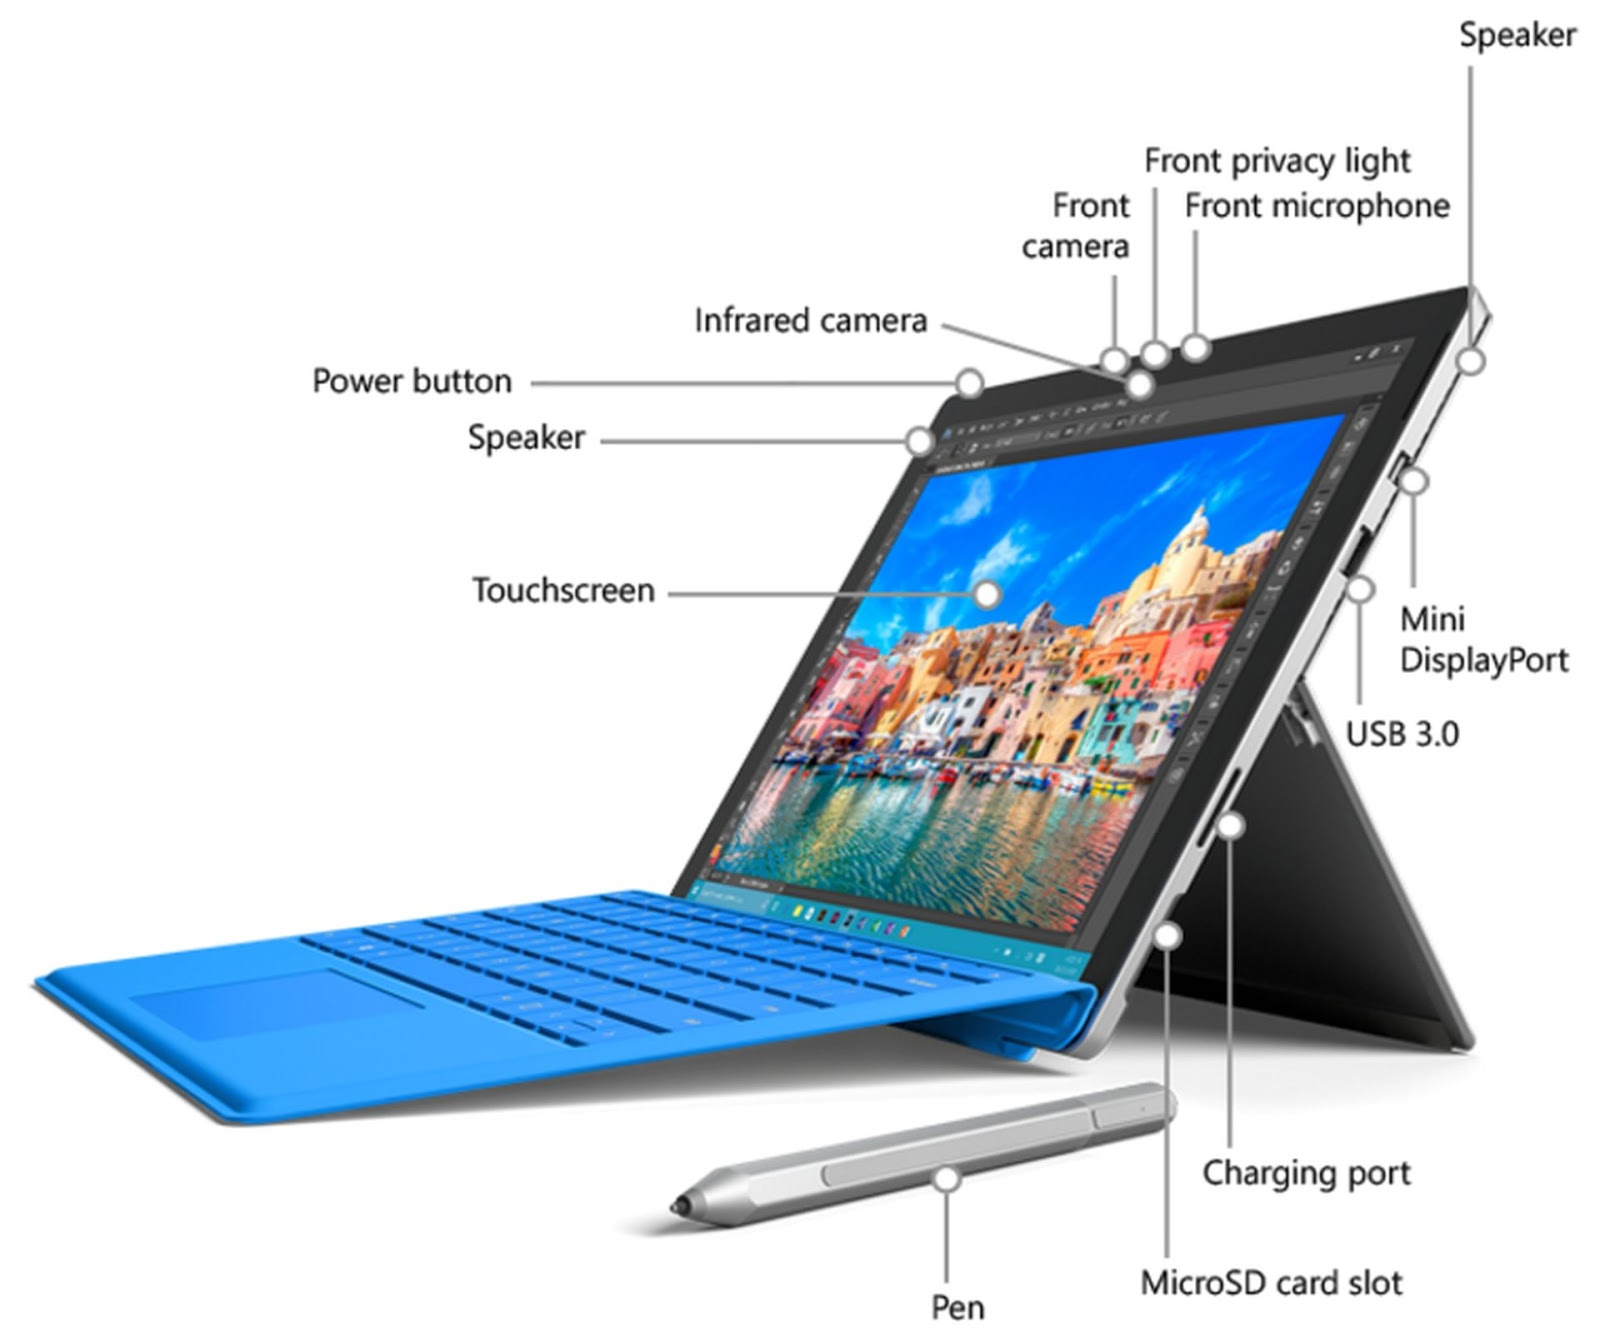 surface pro 4 user guide manual and tutorial. Black Bedroom Furniture Sets. Home Design Ideas